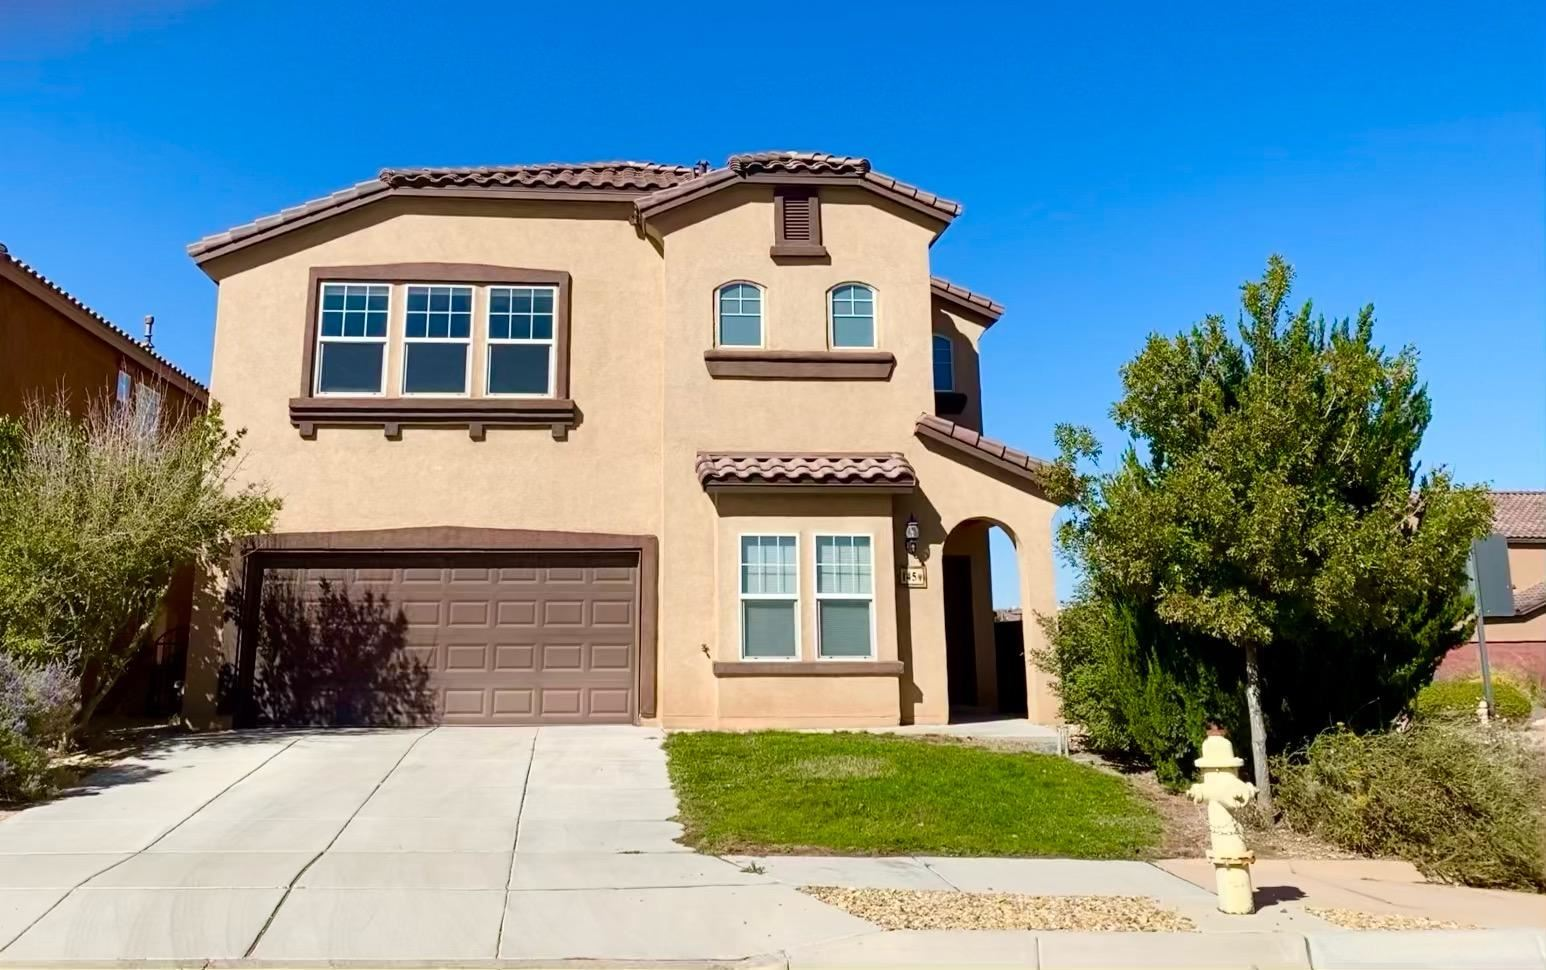 Photo of 145 MESETA Court NE, Rio Rancho, NM 87124 (MLS # 977643)